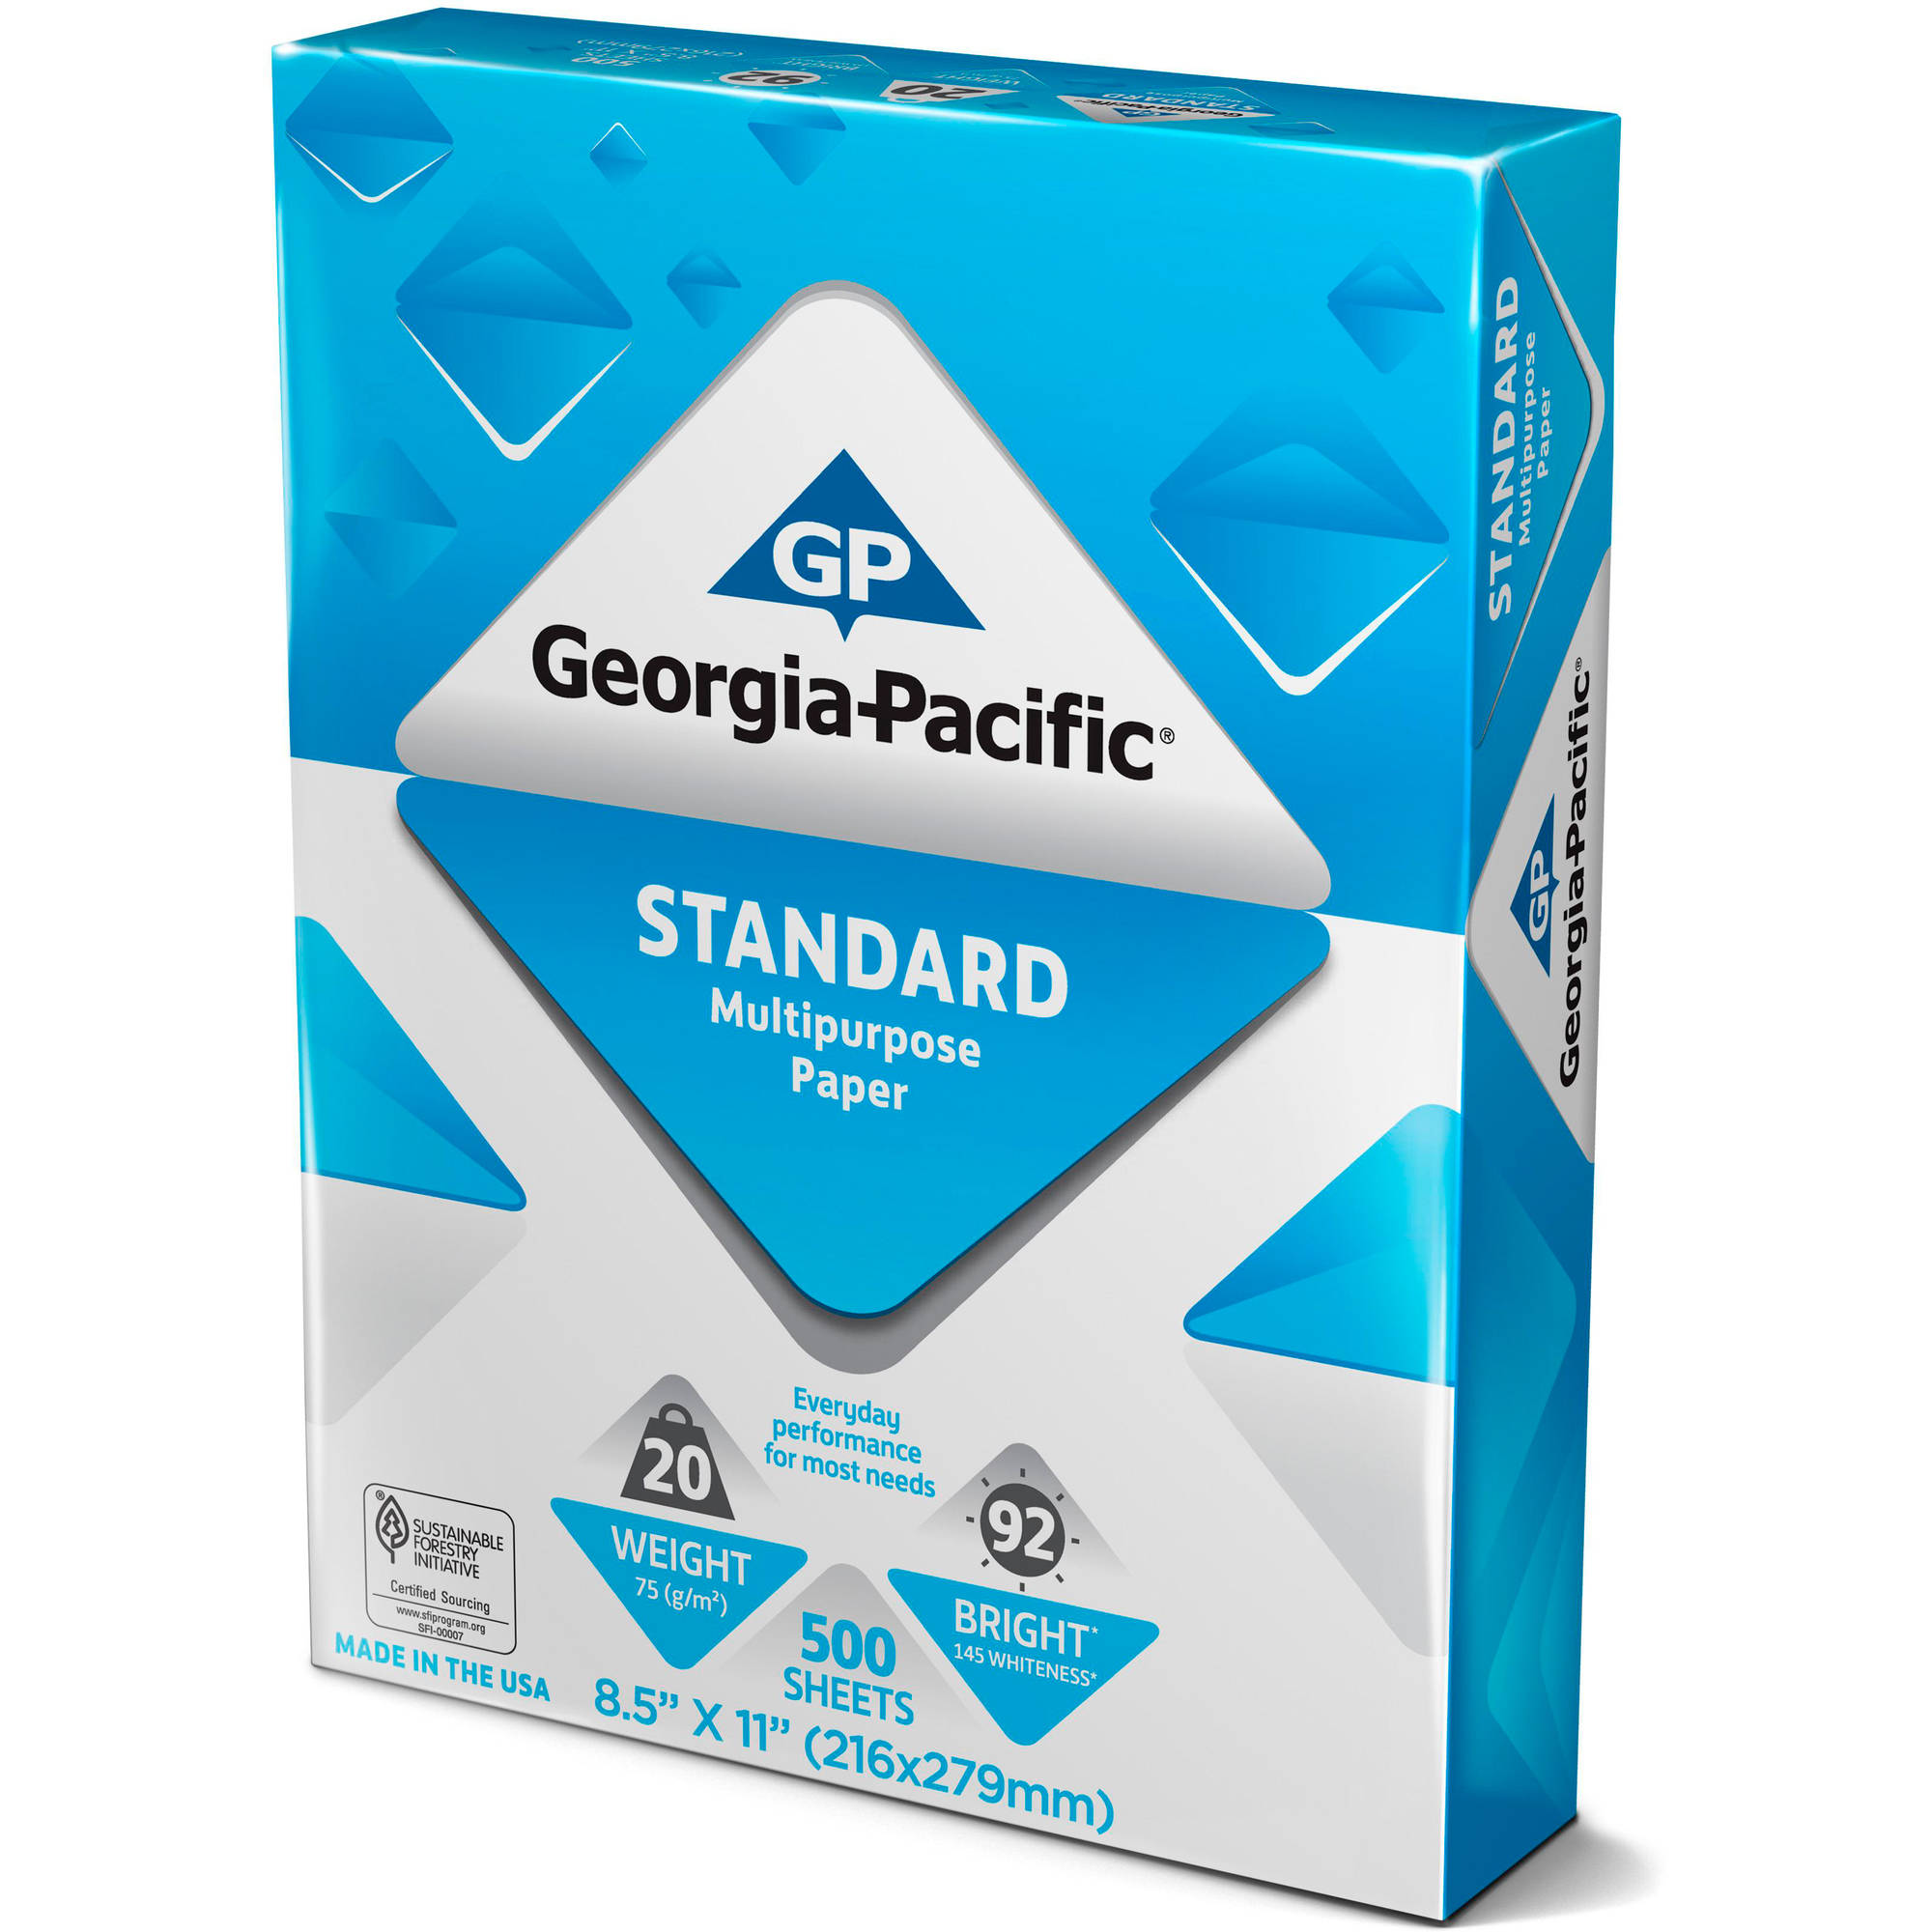 "Georgia-Pacific Standard Multipurpose Paper, 8.5"" x 11"", 20lb, 92 Brightness, 500 Sheets"